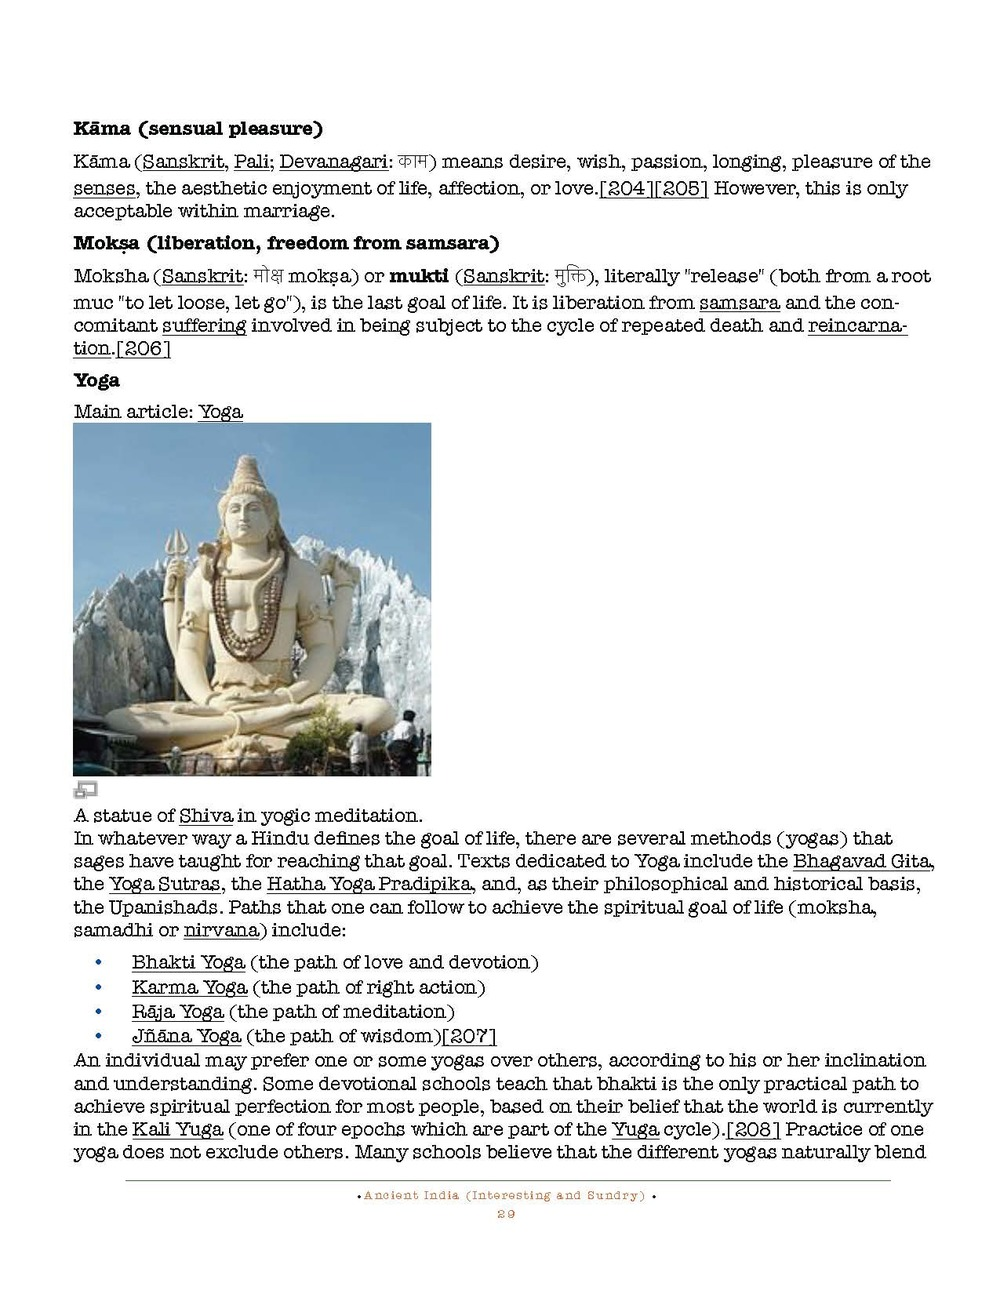 HOCE- Ancient India Notes (Other Interesting and Sundry)_Page_029.jpg